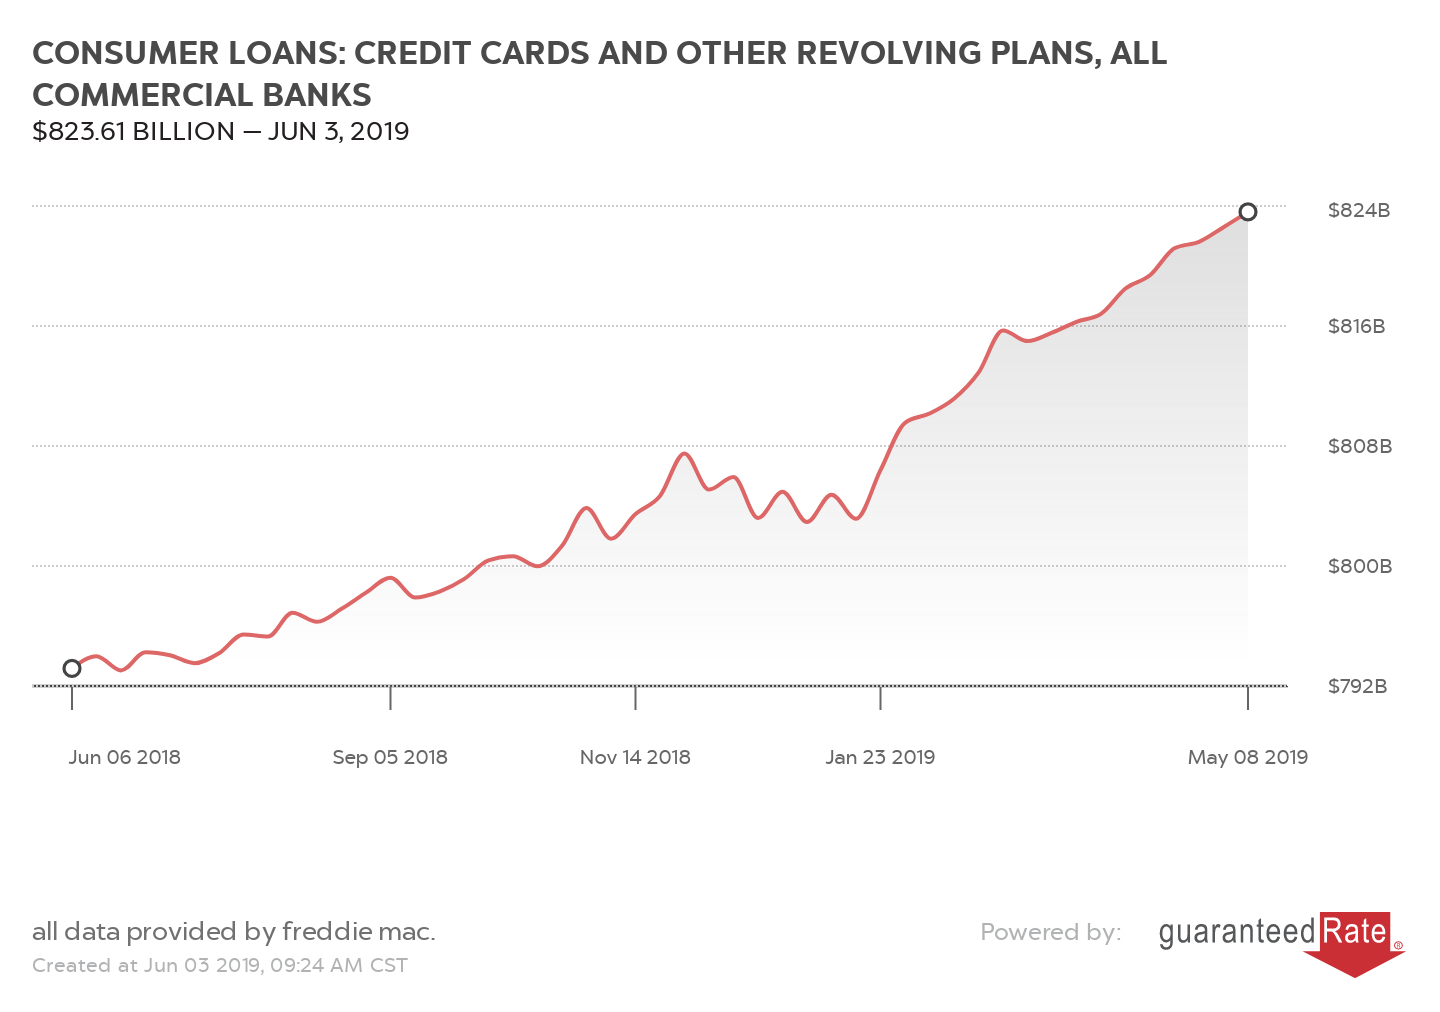 CONSUMER LOANS: CREDIT CARDS AND OTHER REVOLVING PLANS, ALL COMMERCIAL BANKS